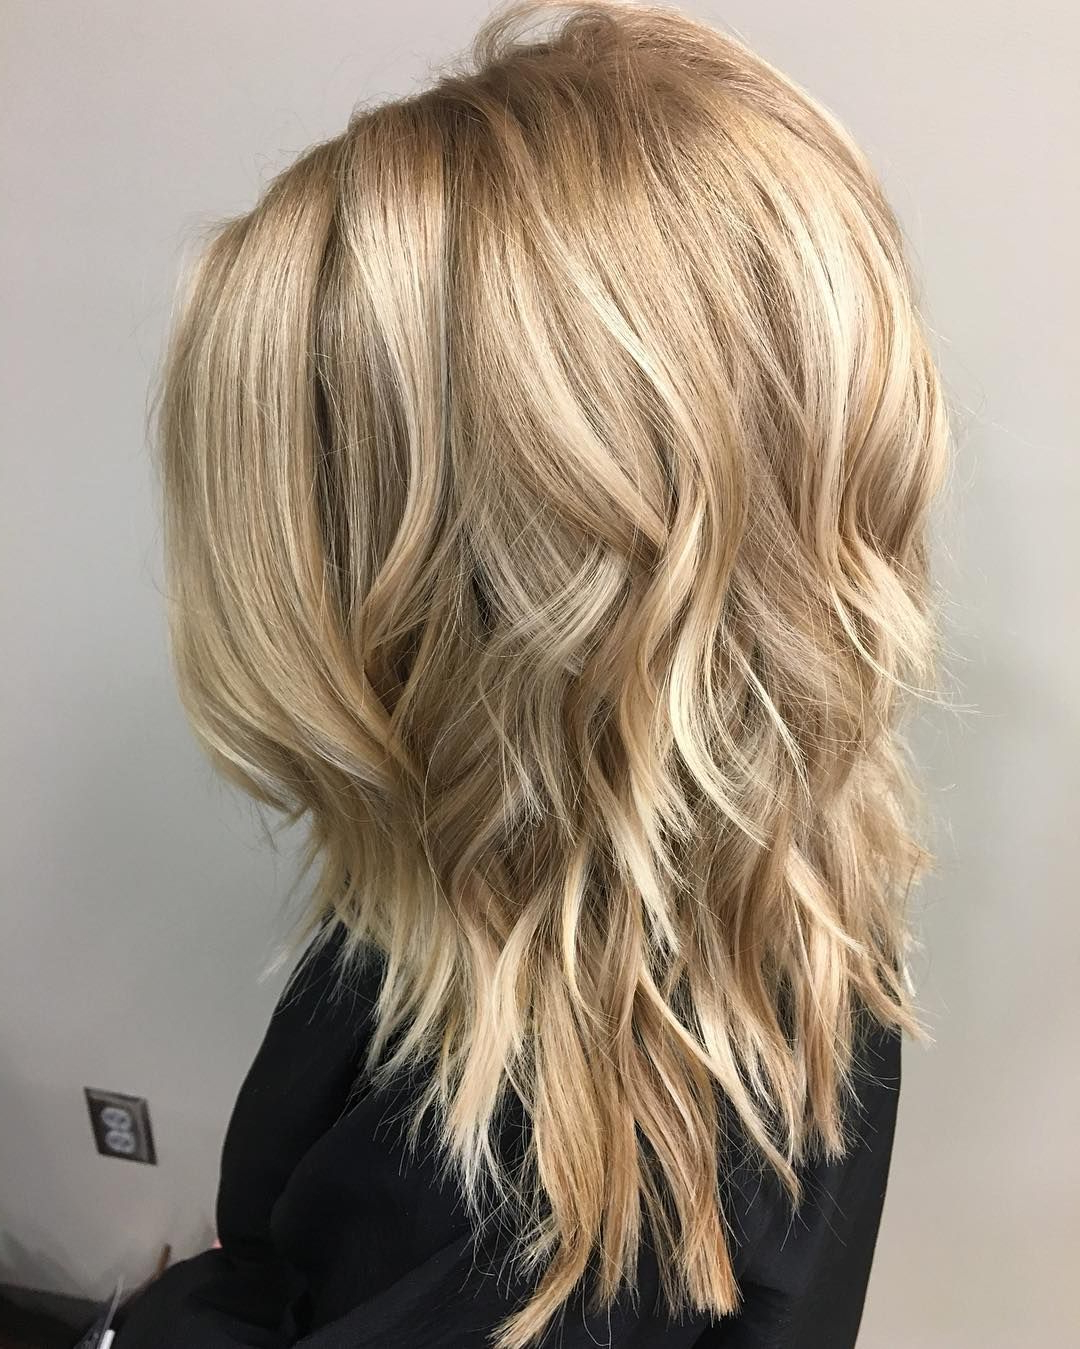 Medium Hairstyle : Medium Length Layered Hairstyles Adorable With With Regard To Most Current Swoopy Layers Hairstyles For Mid Length Hair (View 9 of 20)